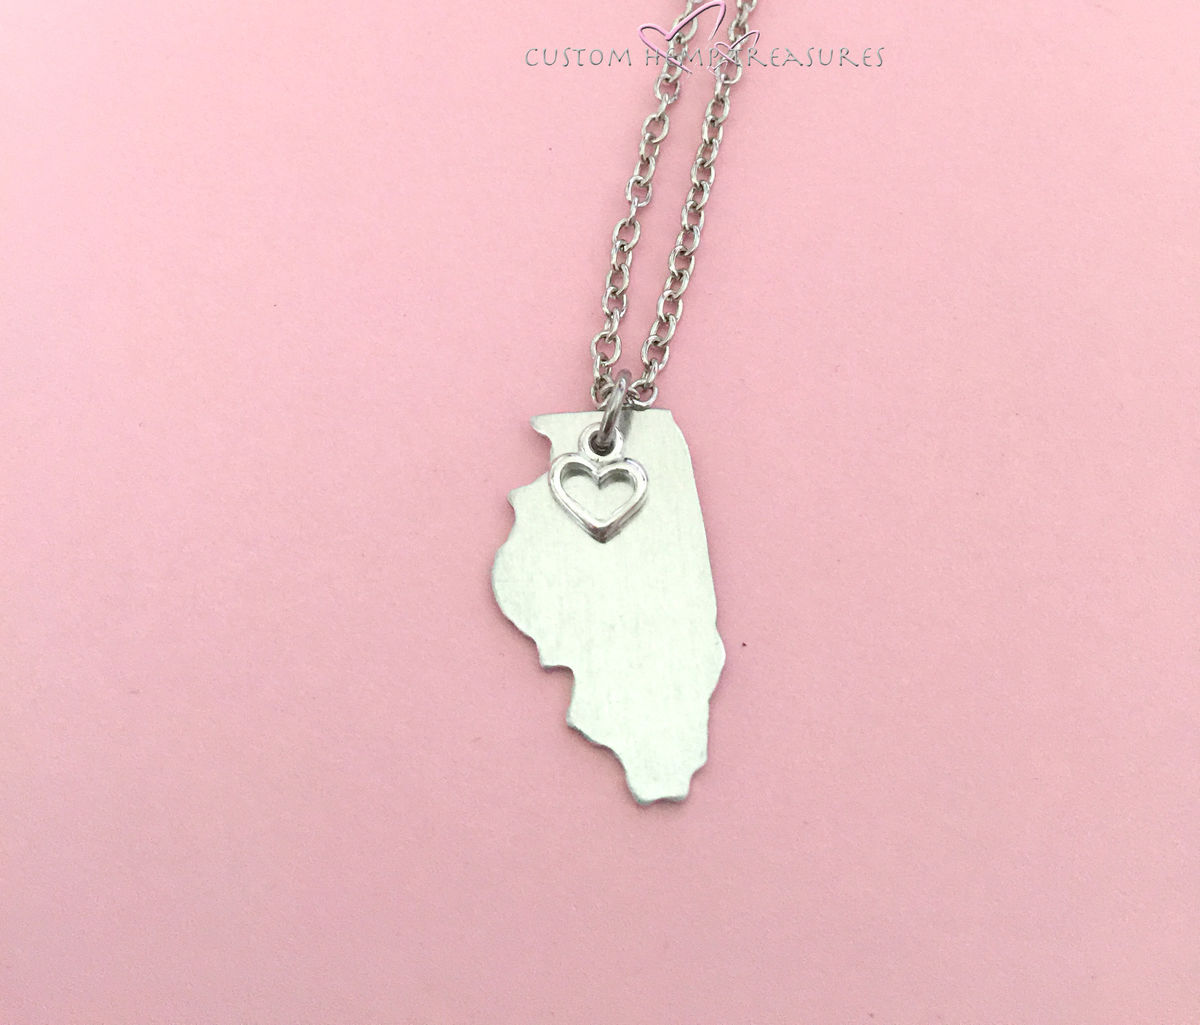 Illinois Necklace, State Necklace with Heart Charm, Aluminum necklace - product image